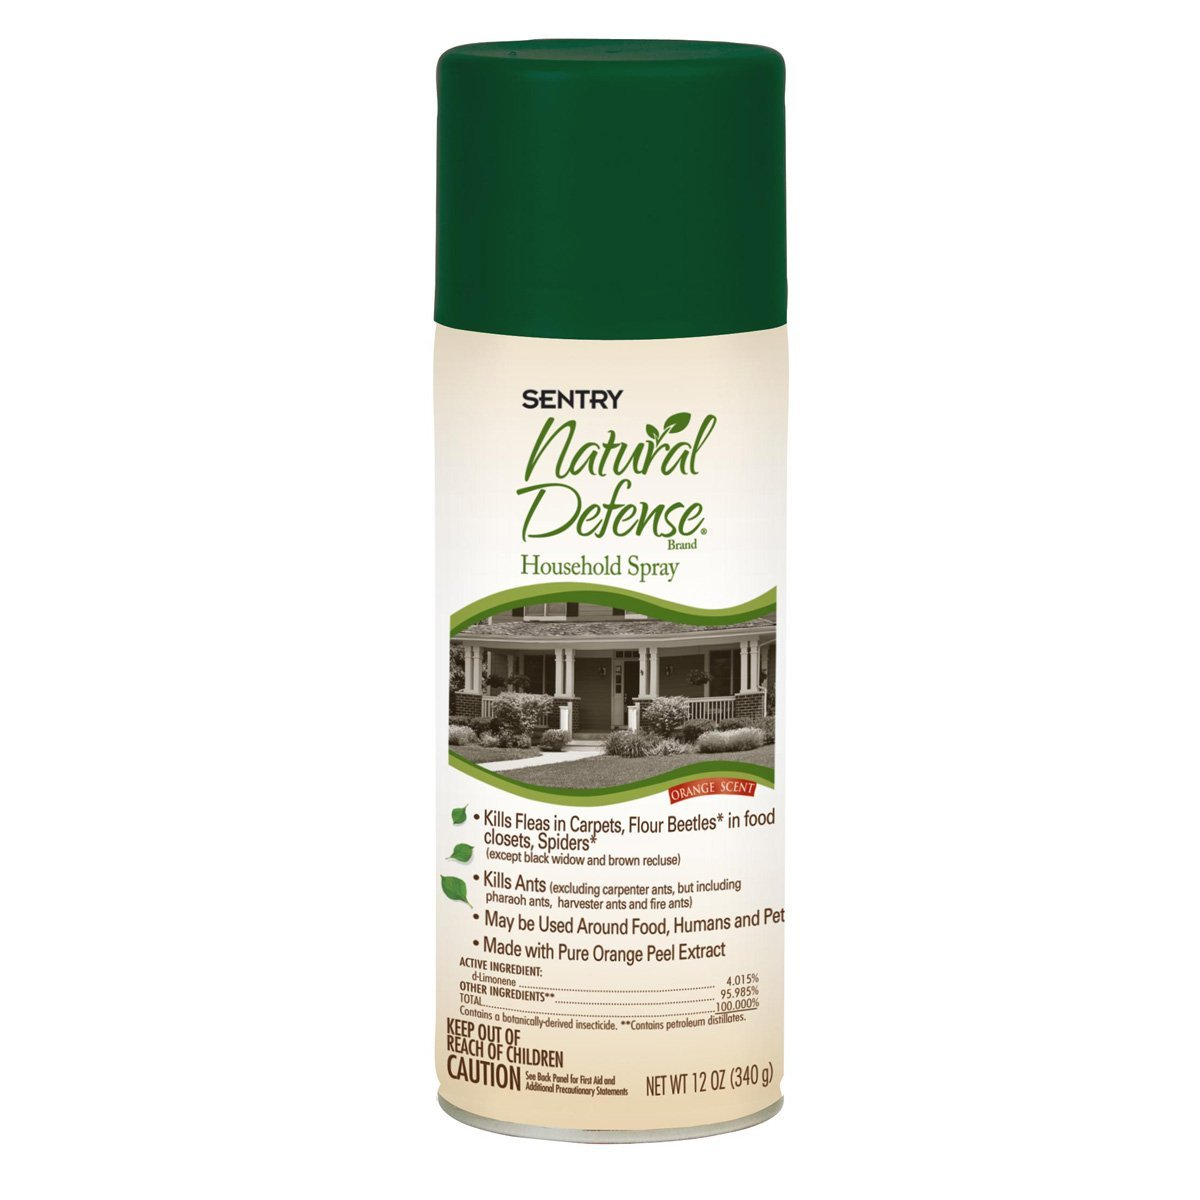 Sentry Natural Defense Natural Household Spray